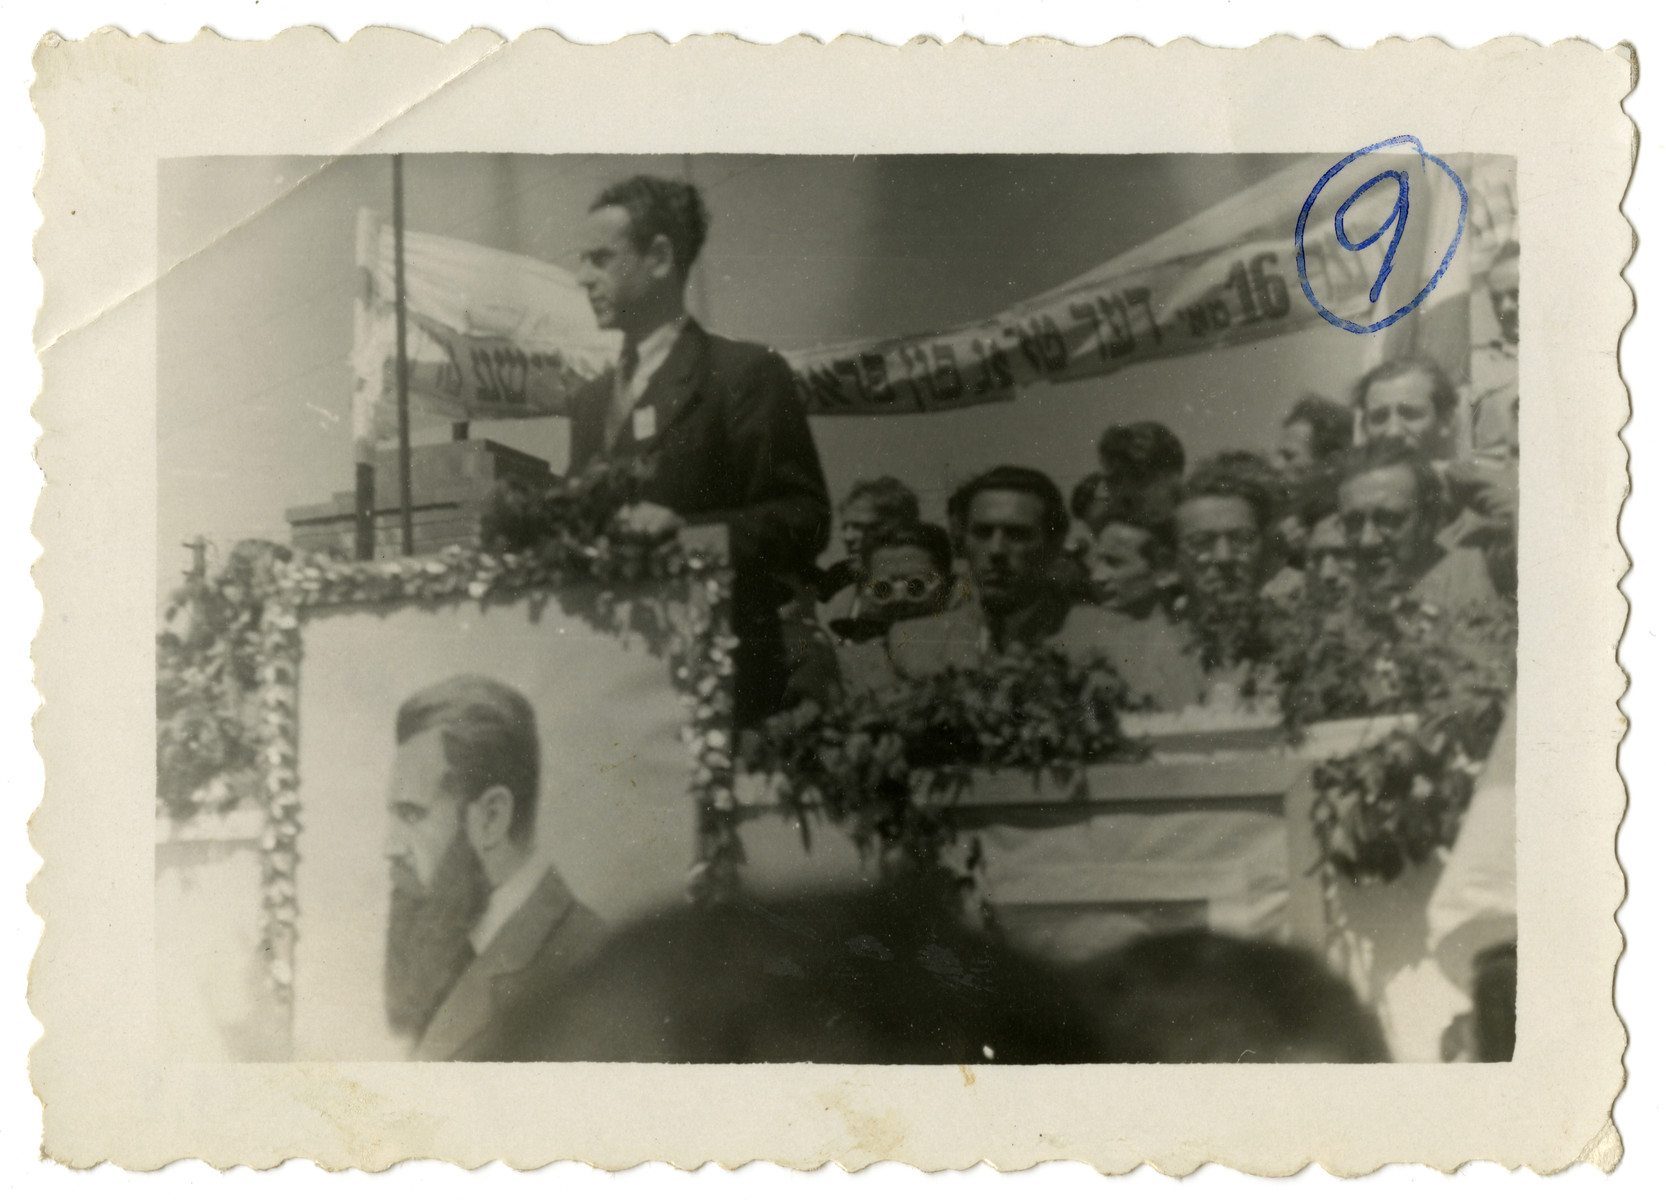 Solomon Manischewitz, the donor, speaks from a podium in front of a crowd at an assembly announcing the proclamation of the state of Israel.